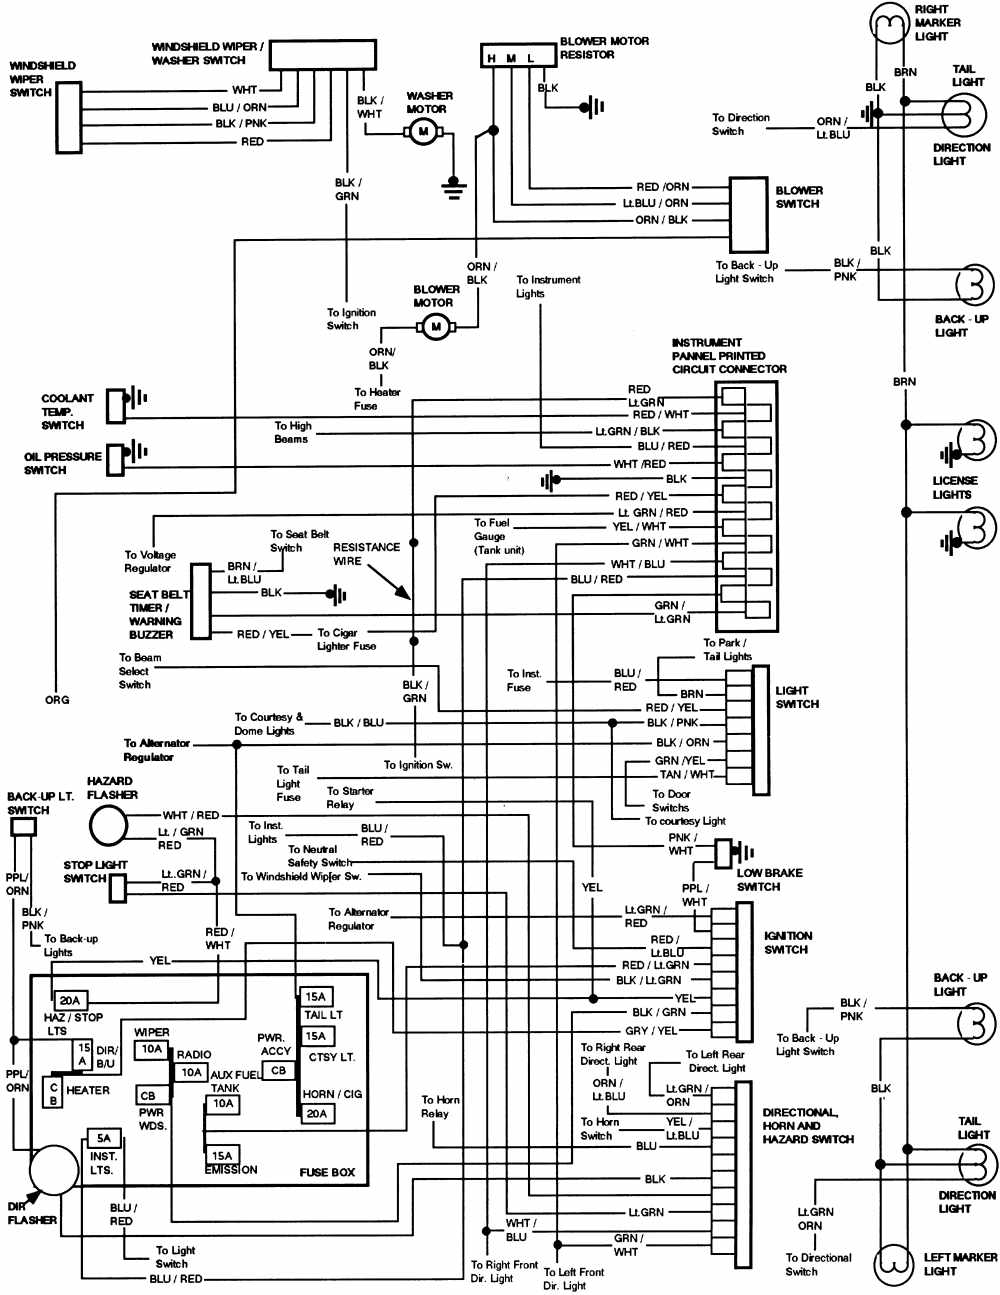 89 ford ranger instrument wiring diagram